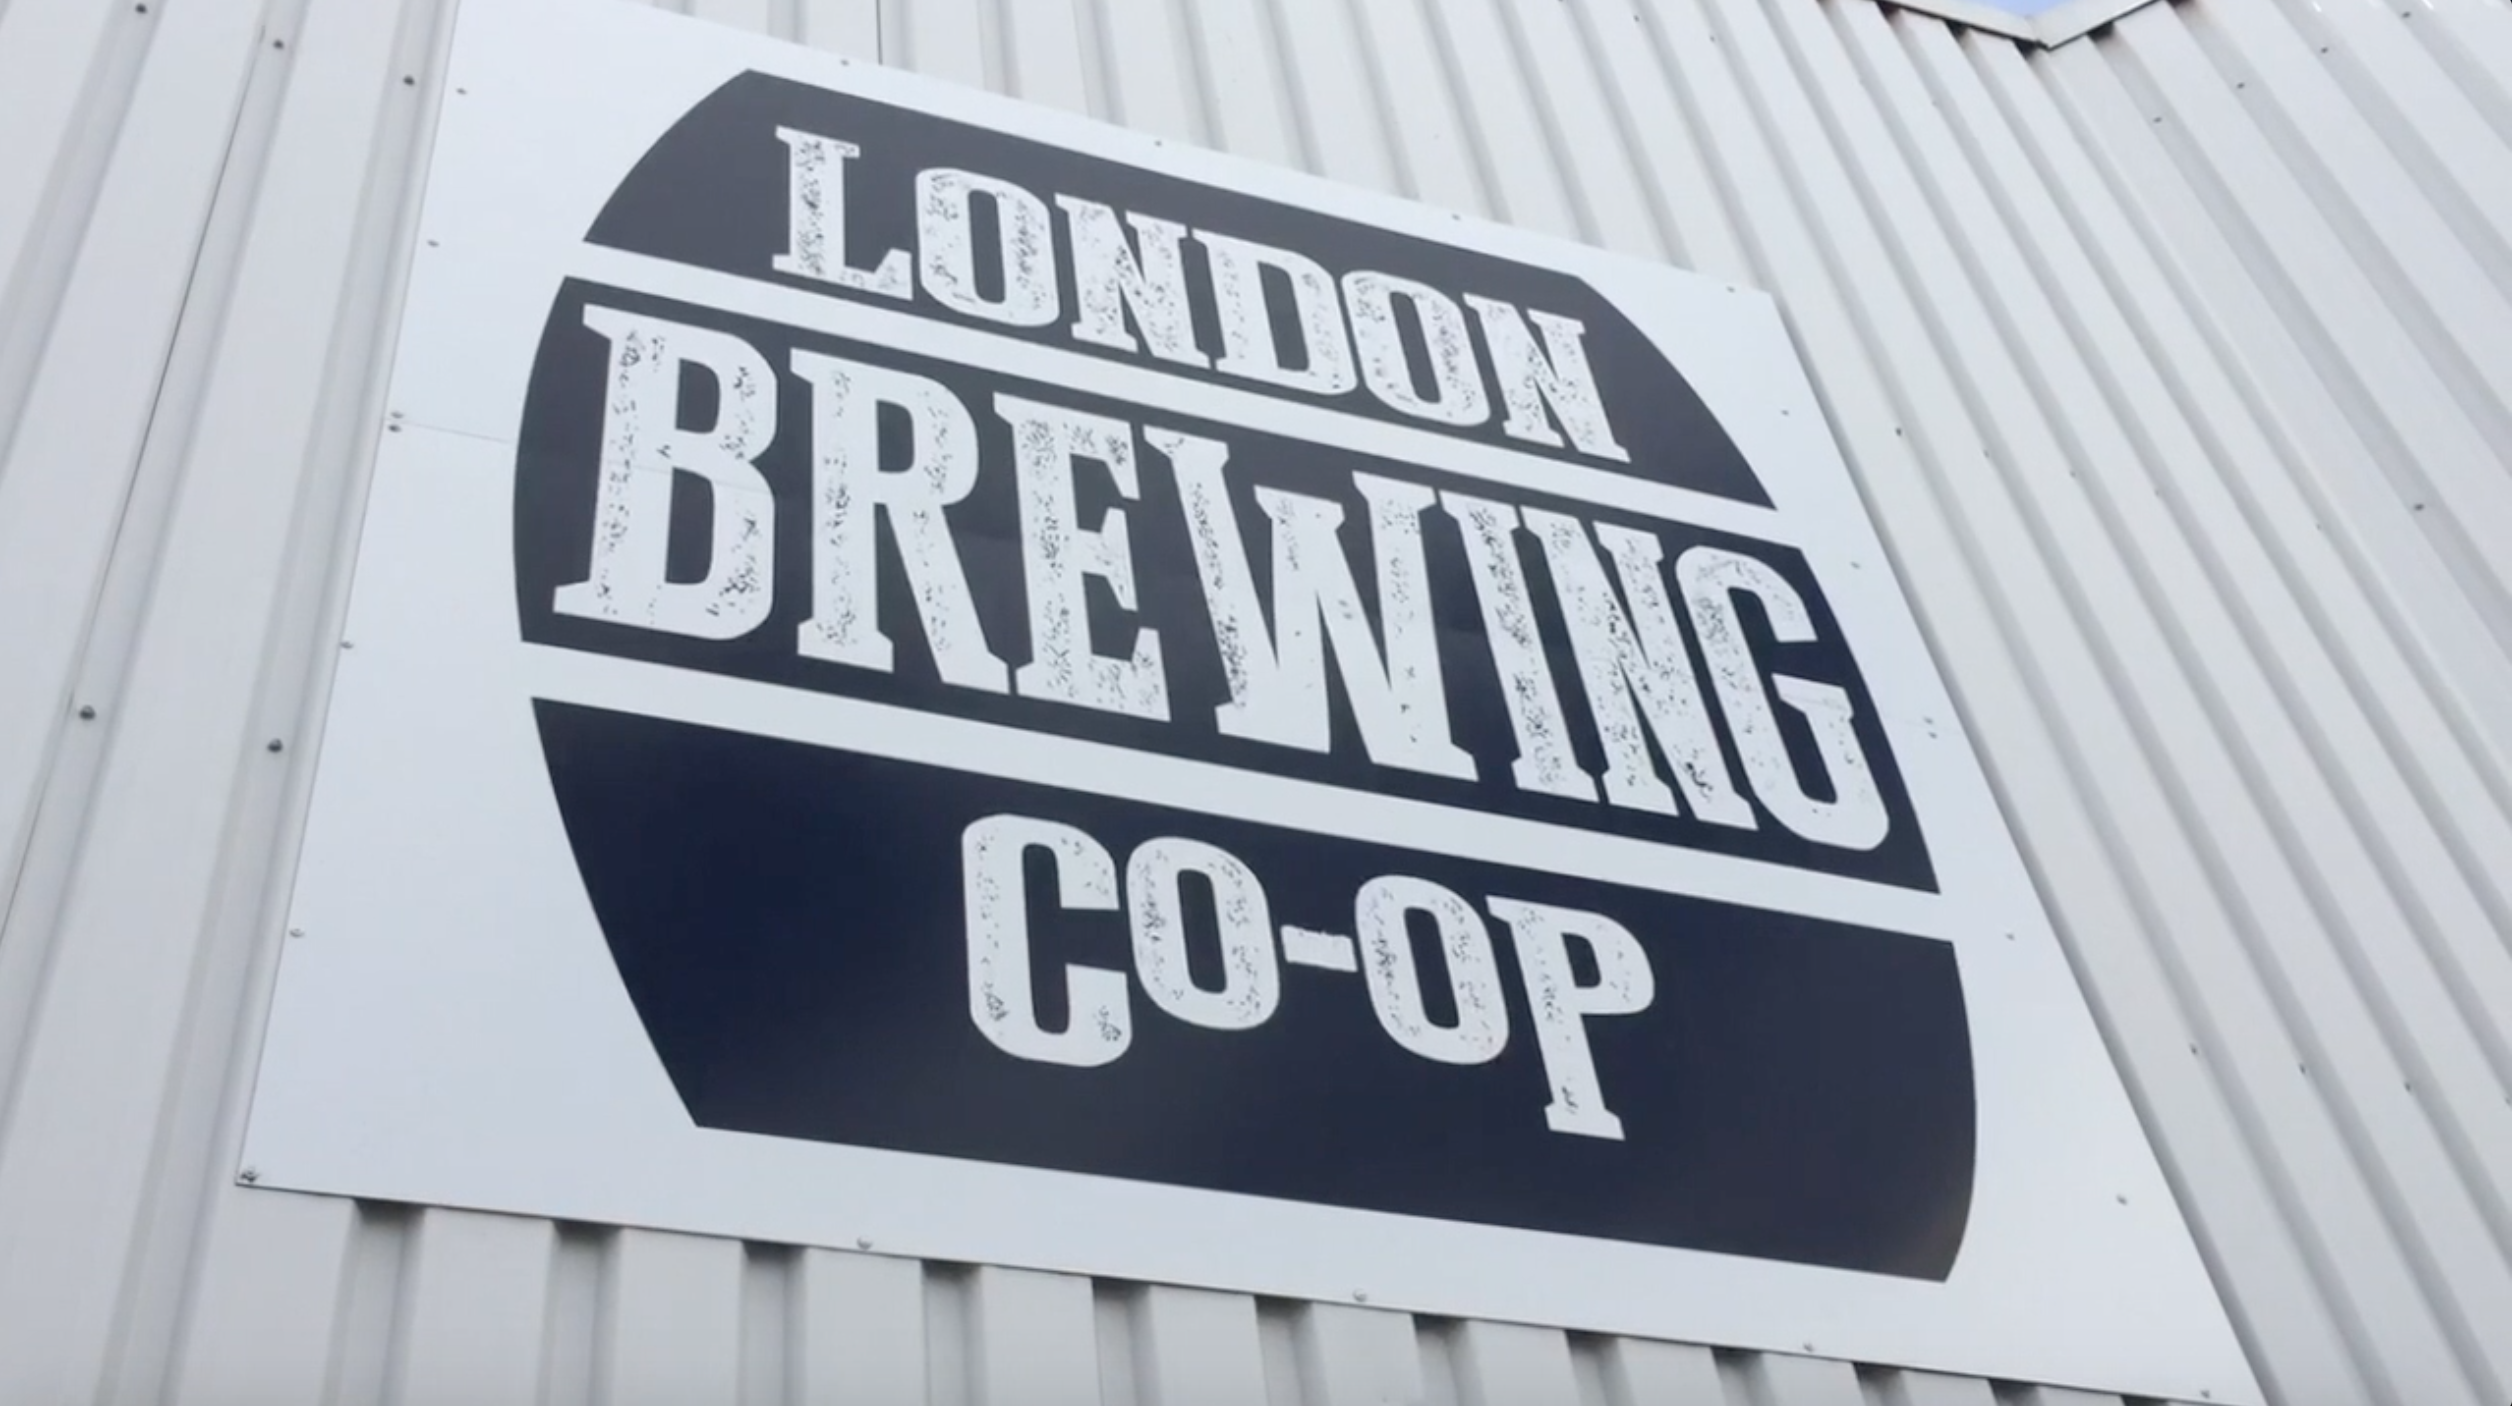 London Brewing Co-operative embracing new home